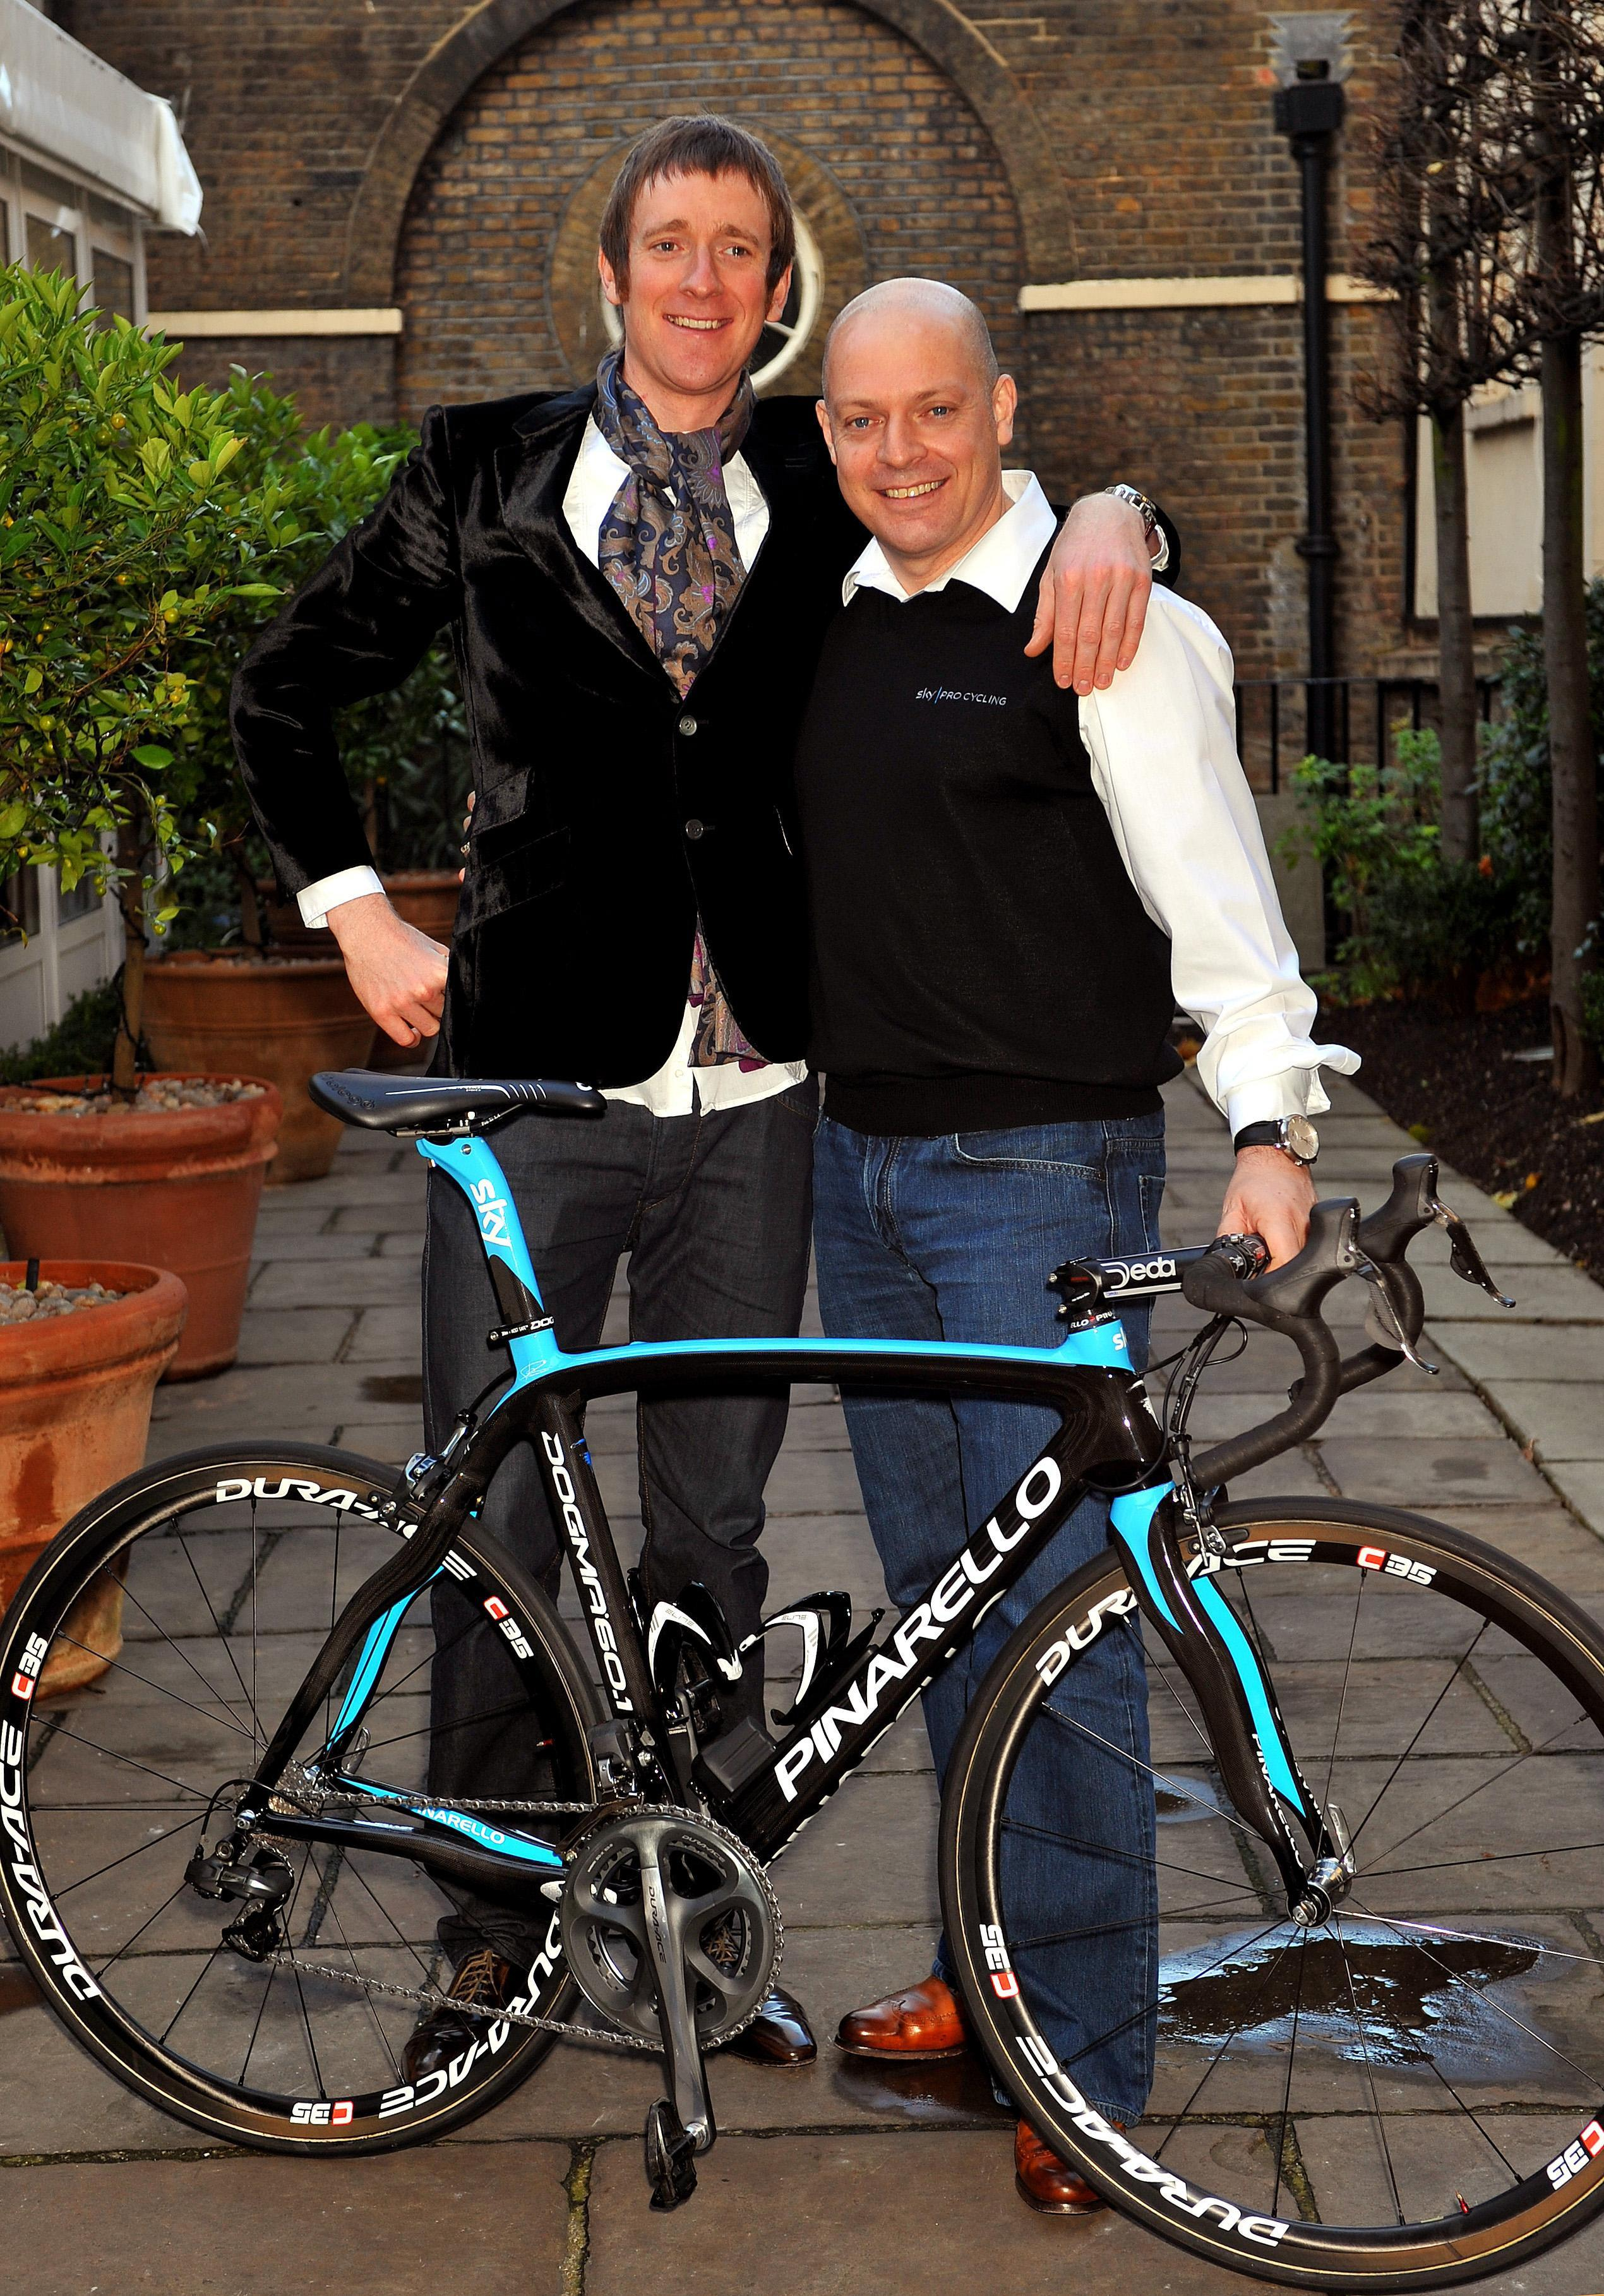 """Wiggins and Brailsford have been accused of """"crossing an ethical line"""" by the DCMS report"""